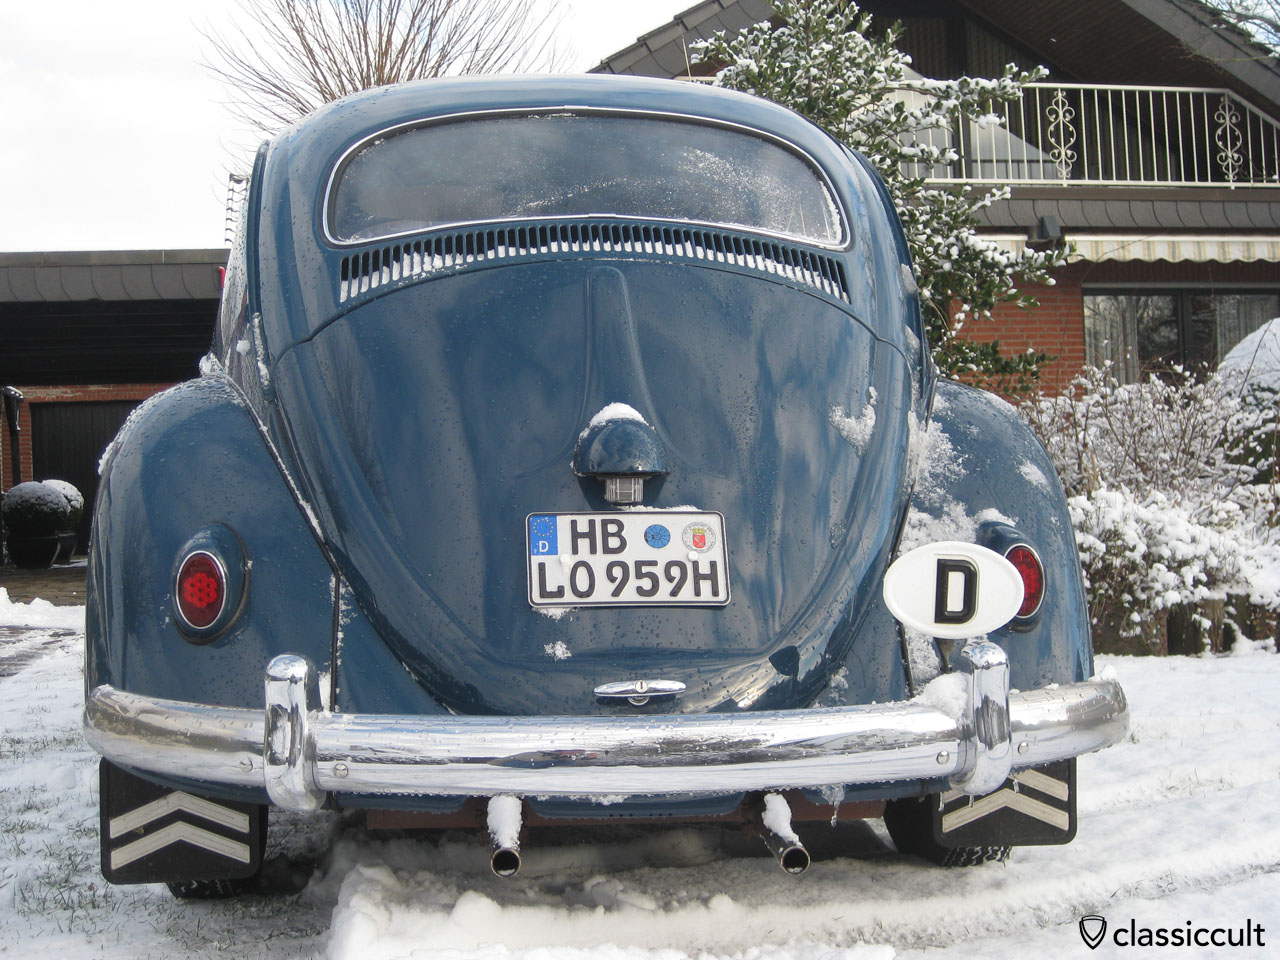 My Bug in snow Winter 2012